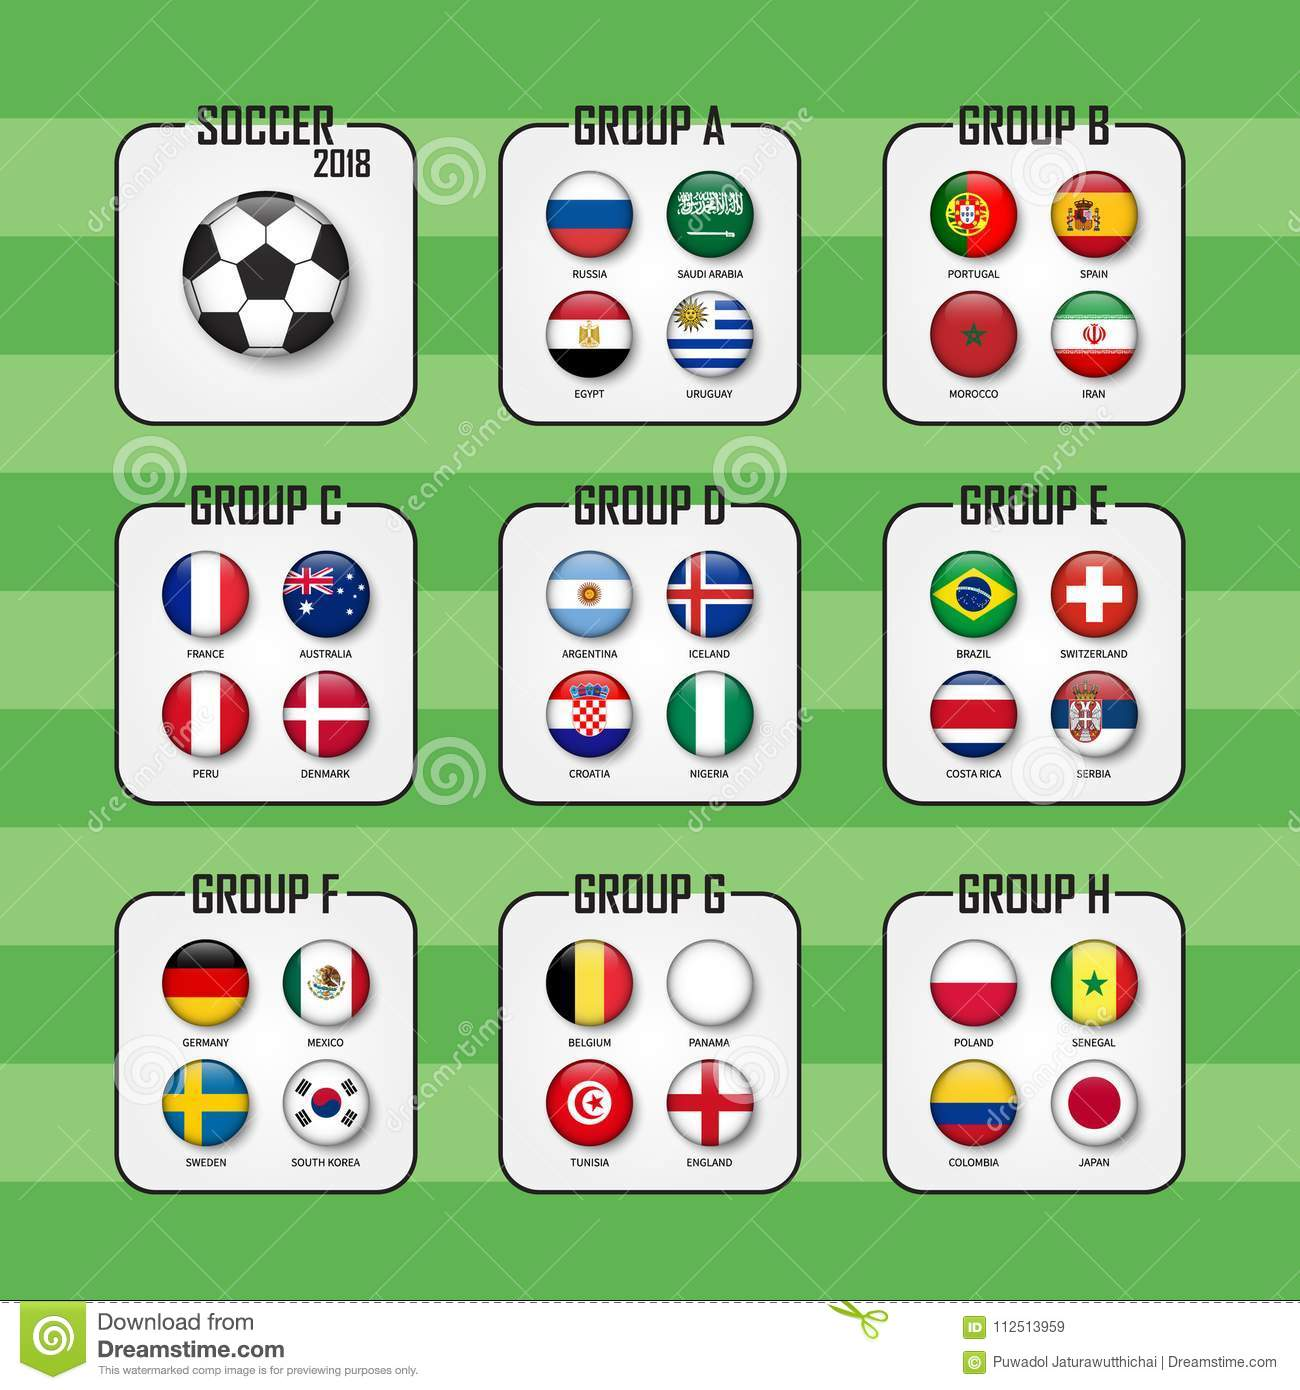 Soccer cup 2018 . Set of national flags team group A - H . Circle design .  Vector for international world championship tournament . f1cc99a51